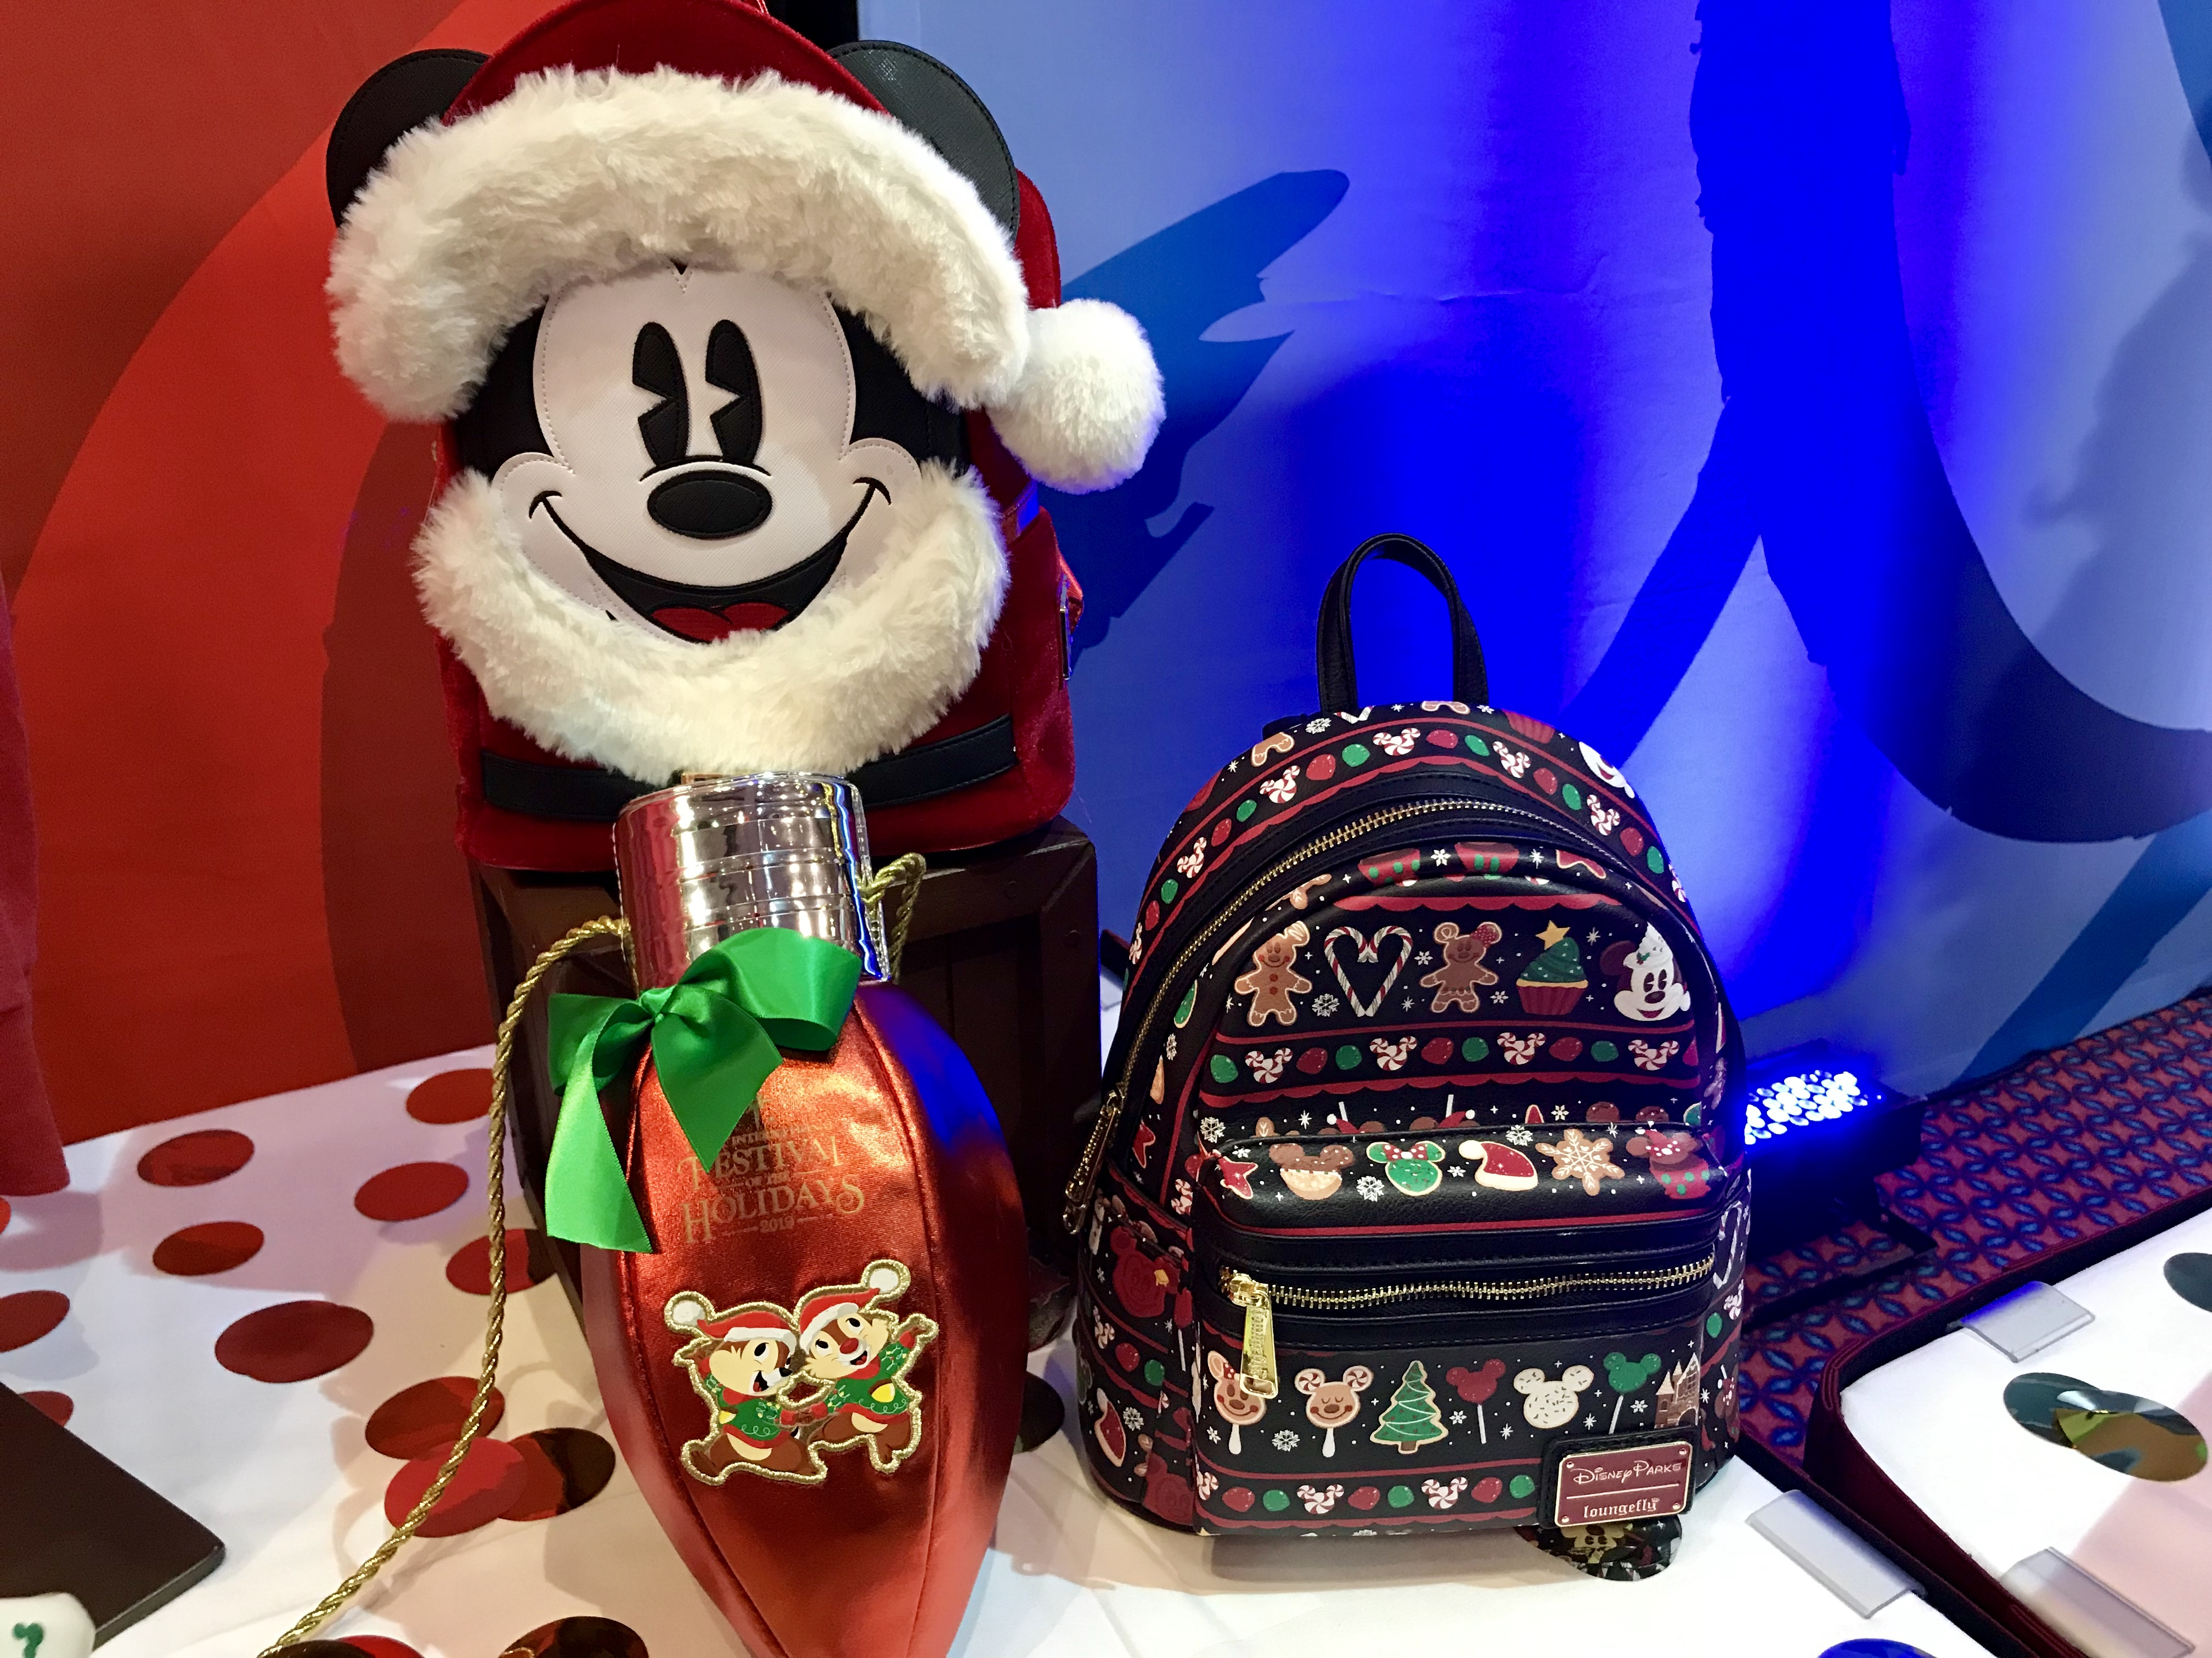 Disneyland Christmas 2019.Festive New Disney Holiday Bags From Loungefly And More